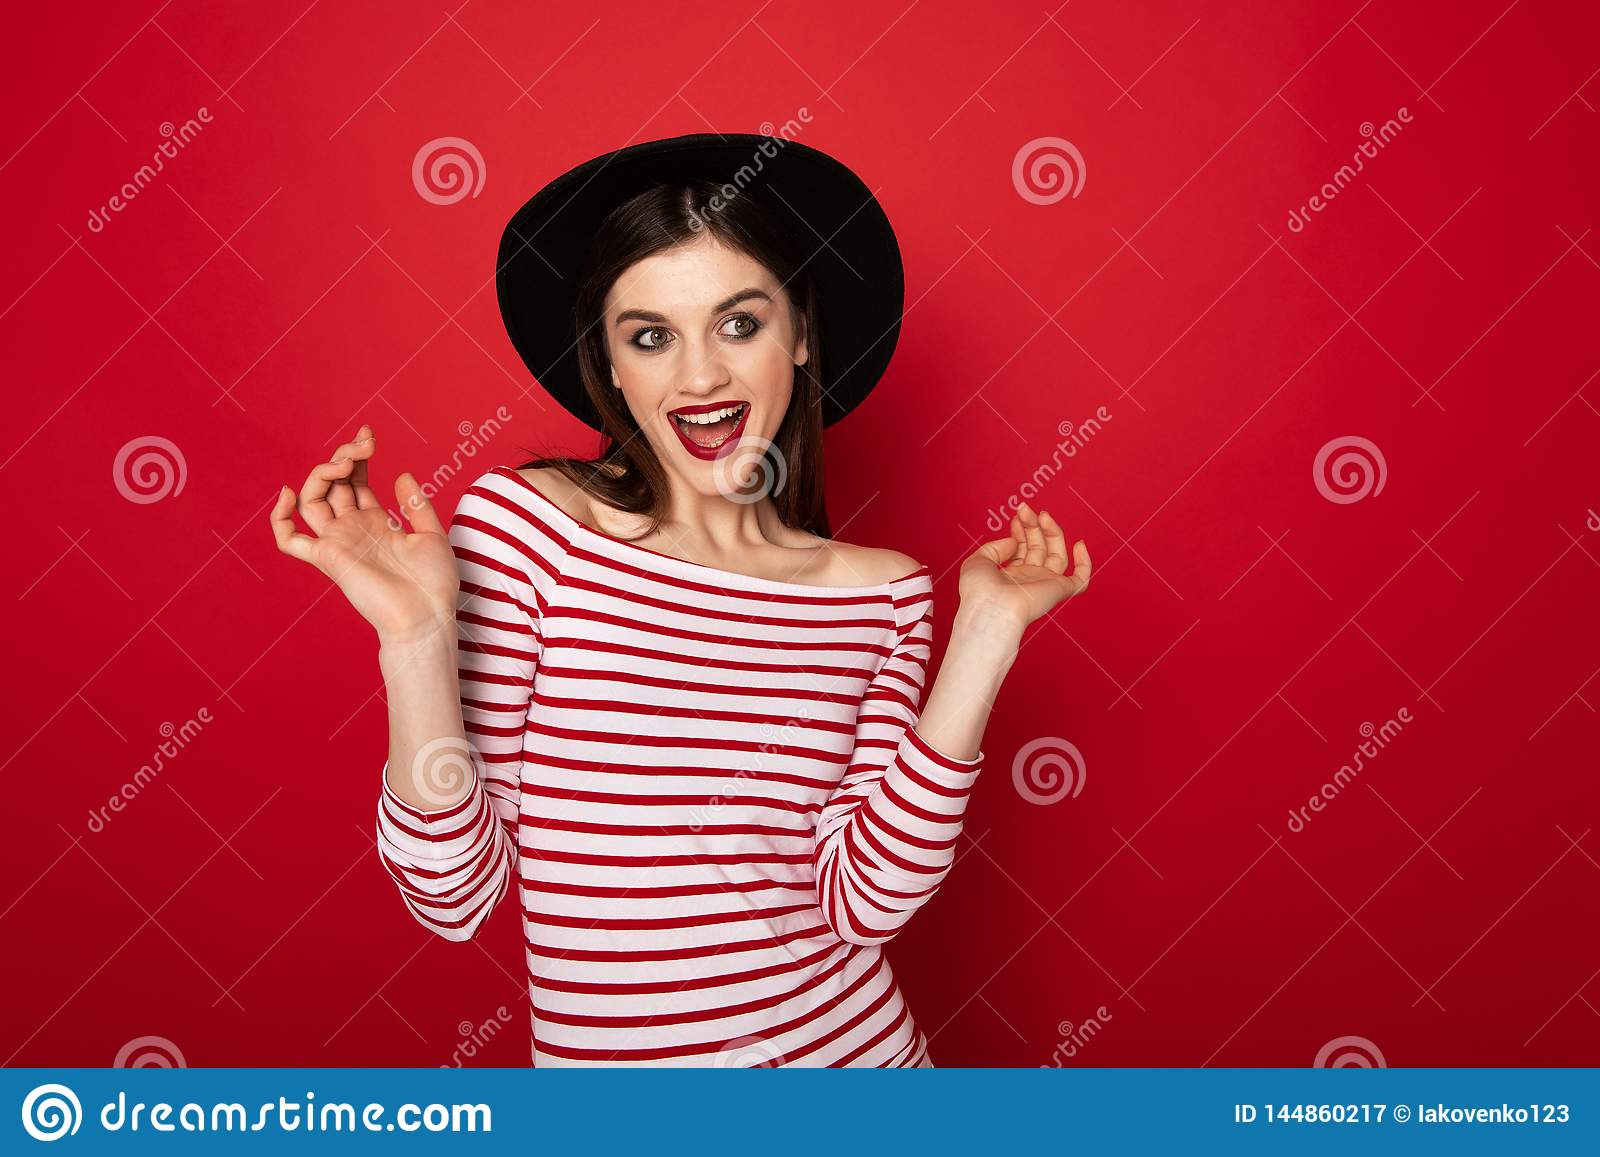 Coquettish girl in striped blouse and black hat